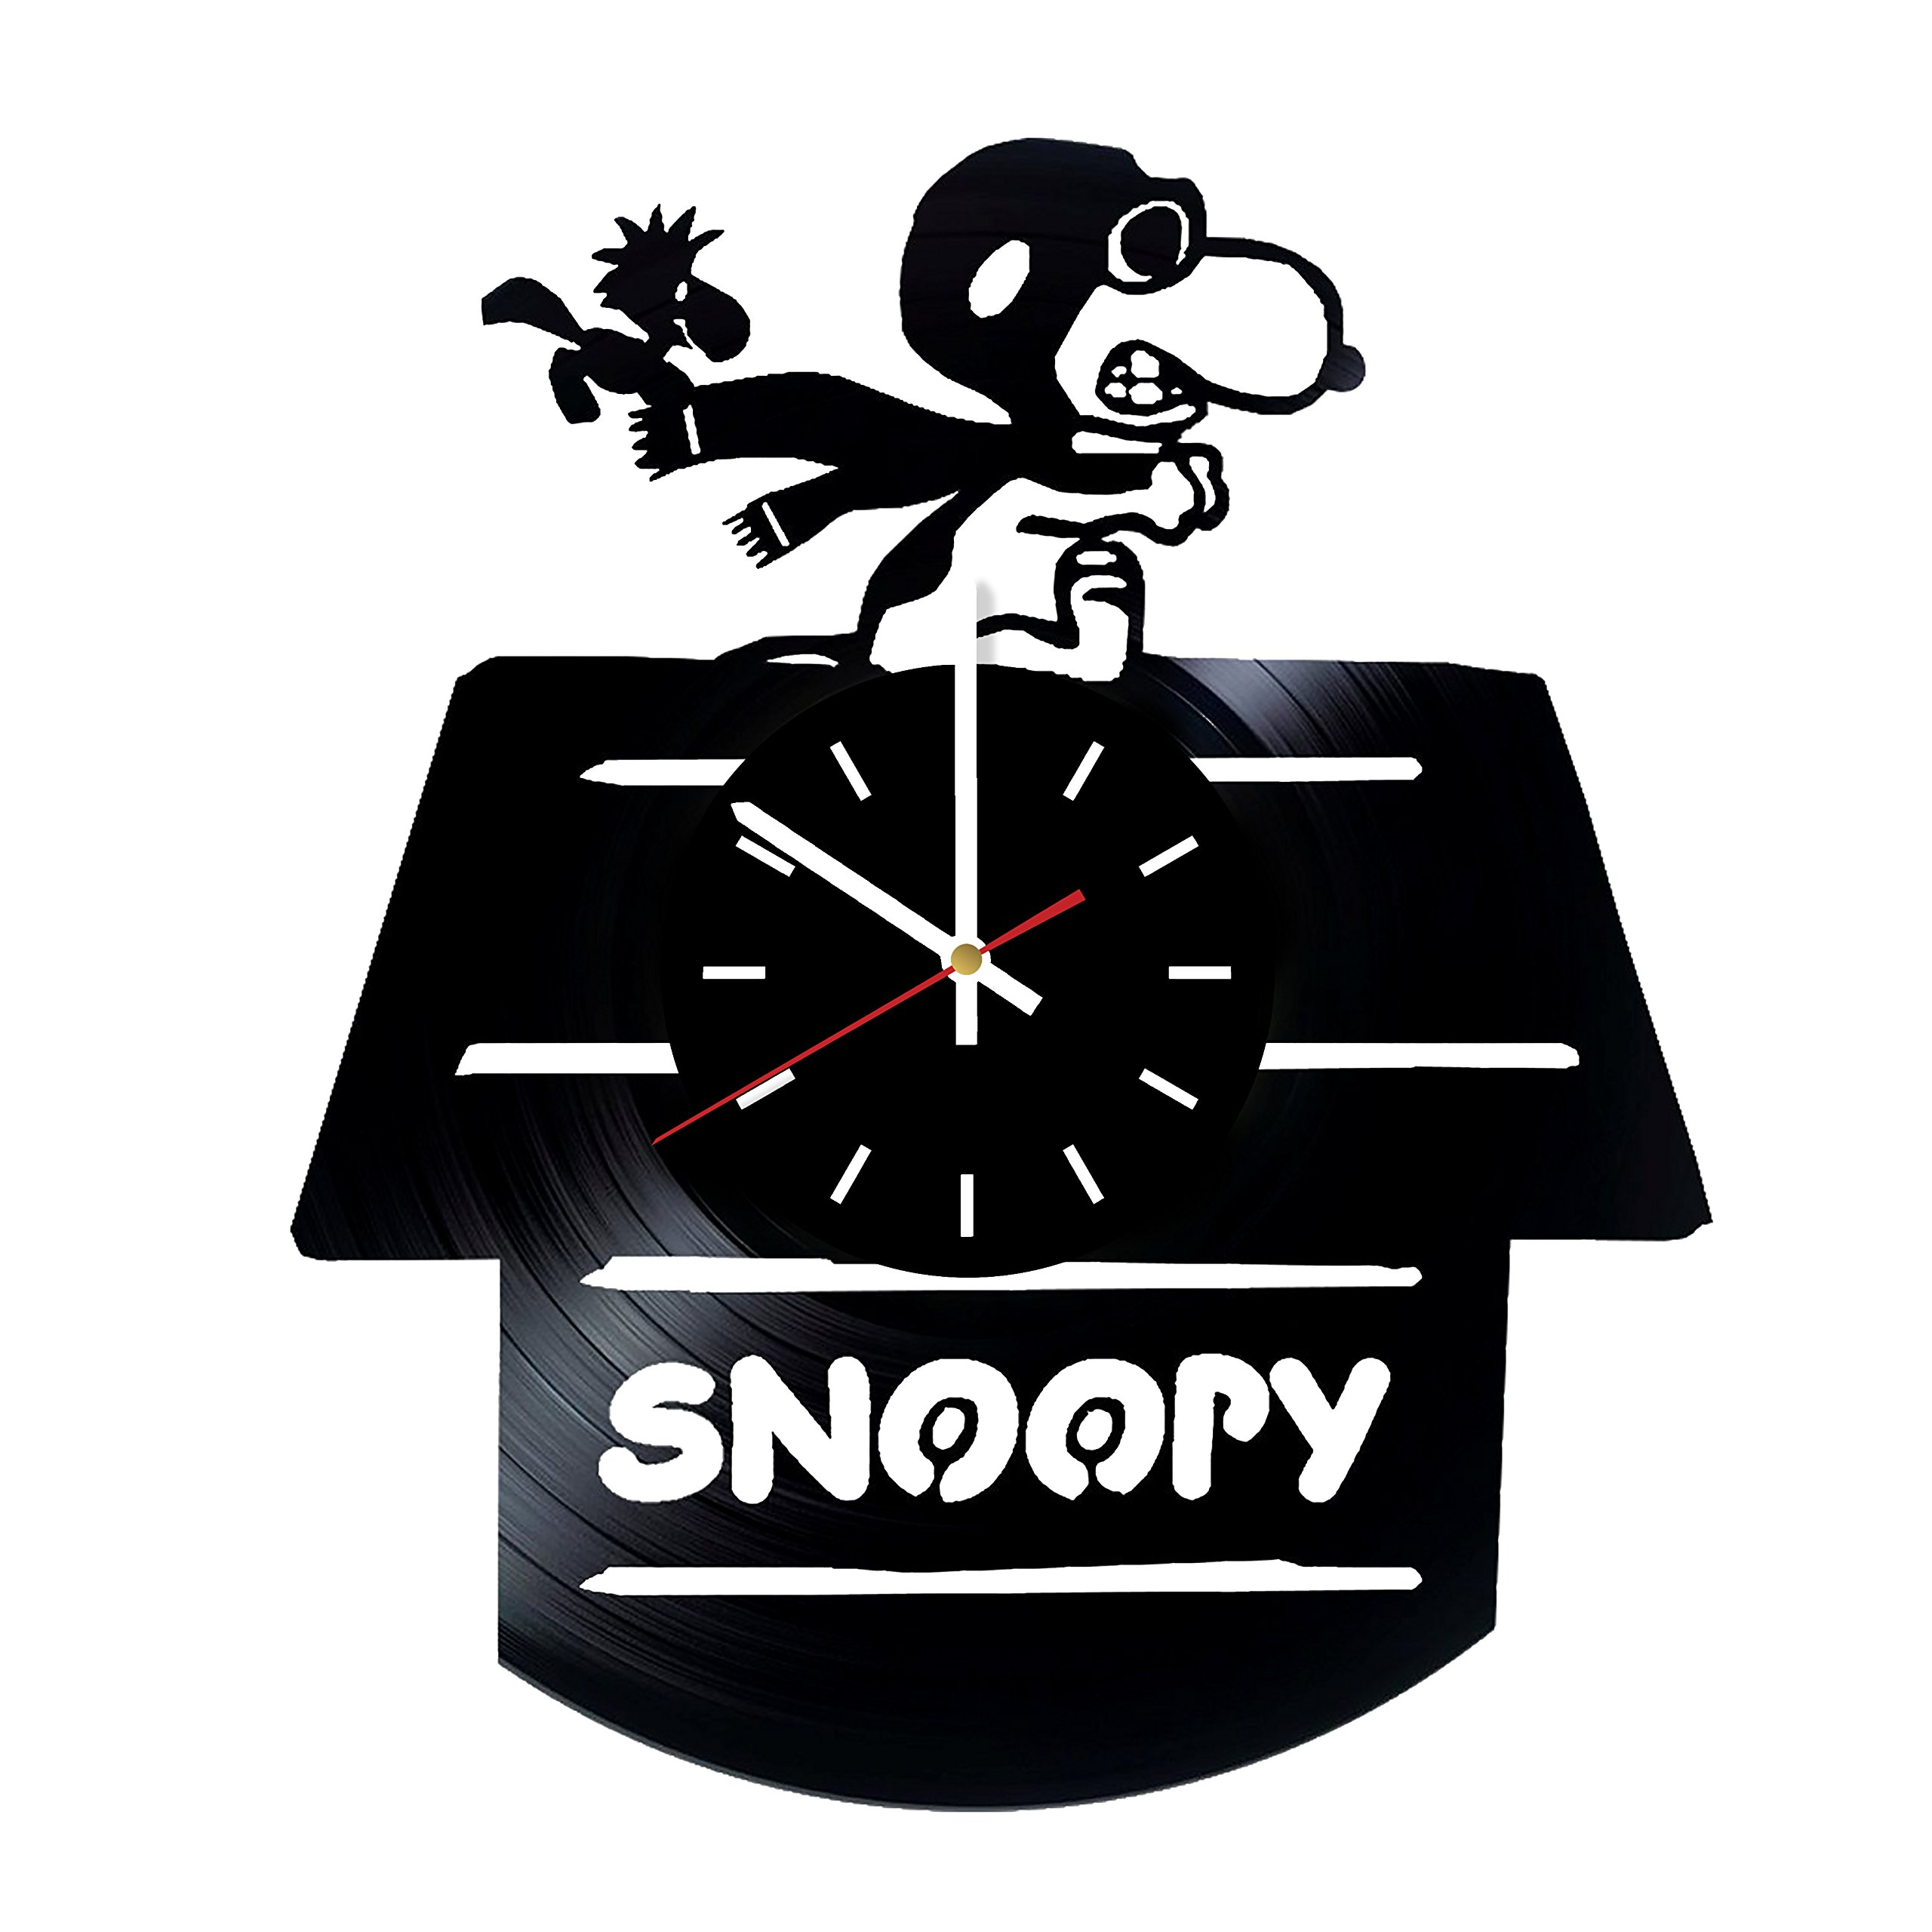 Everyday Arts Snoopy Piloting His World War I Sopwith Camel Design Vinyl Record Wall Clock - Get Unique Bedroom or Garage Wall Decor - Gift Ideas for Friends, Brother - Darth Vader Unique Modern Art